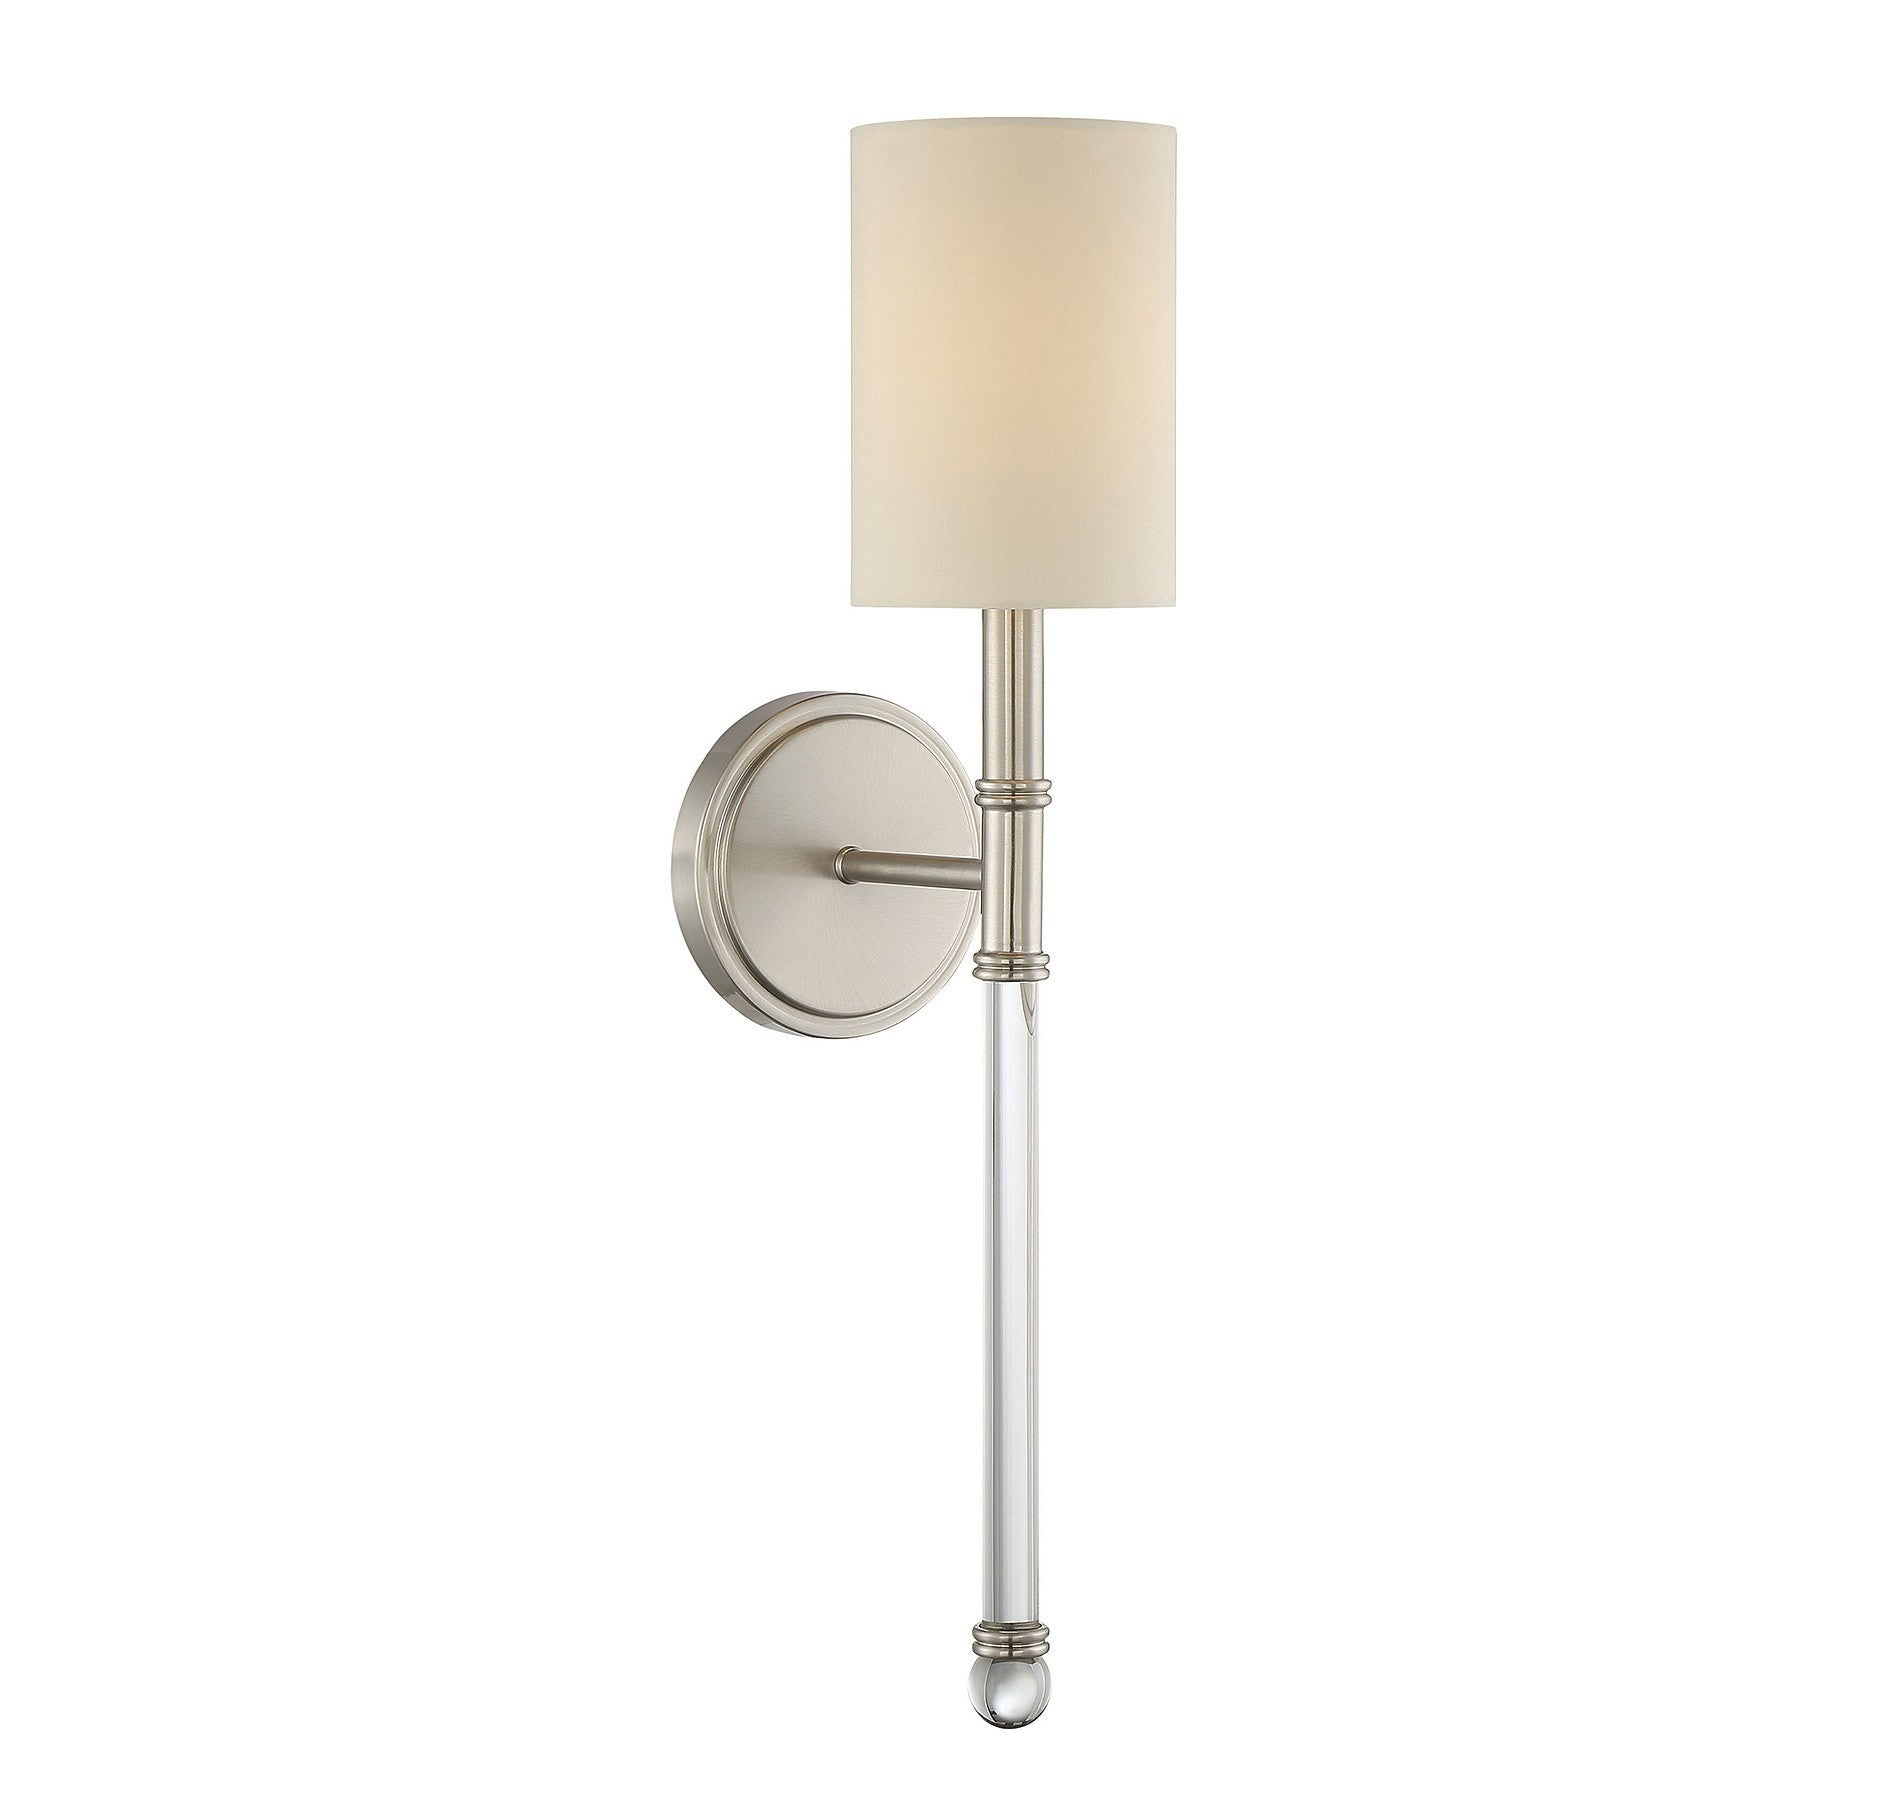 savoy house fremont 1 light wall sconce in satin nickel and soft white fabric shade 9 - Savoy Lighting